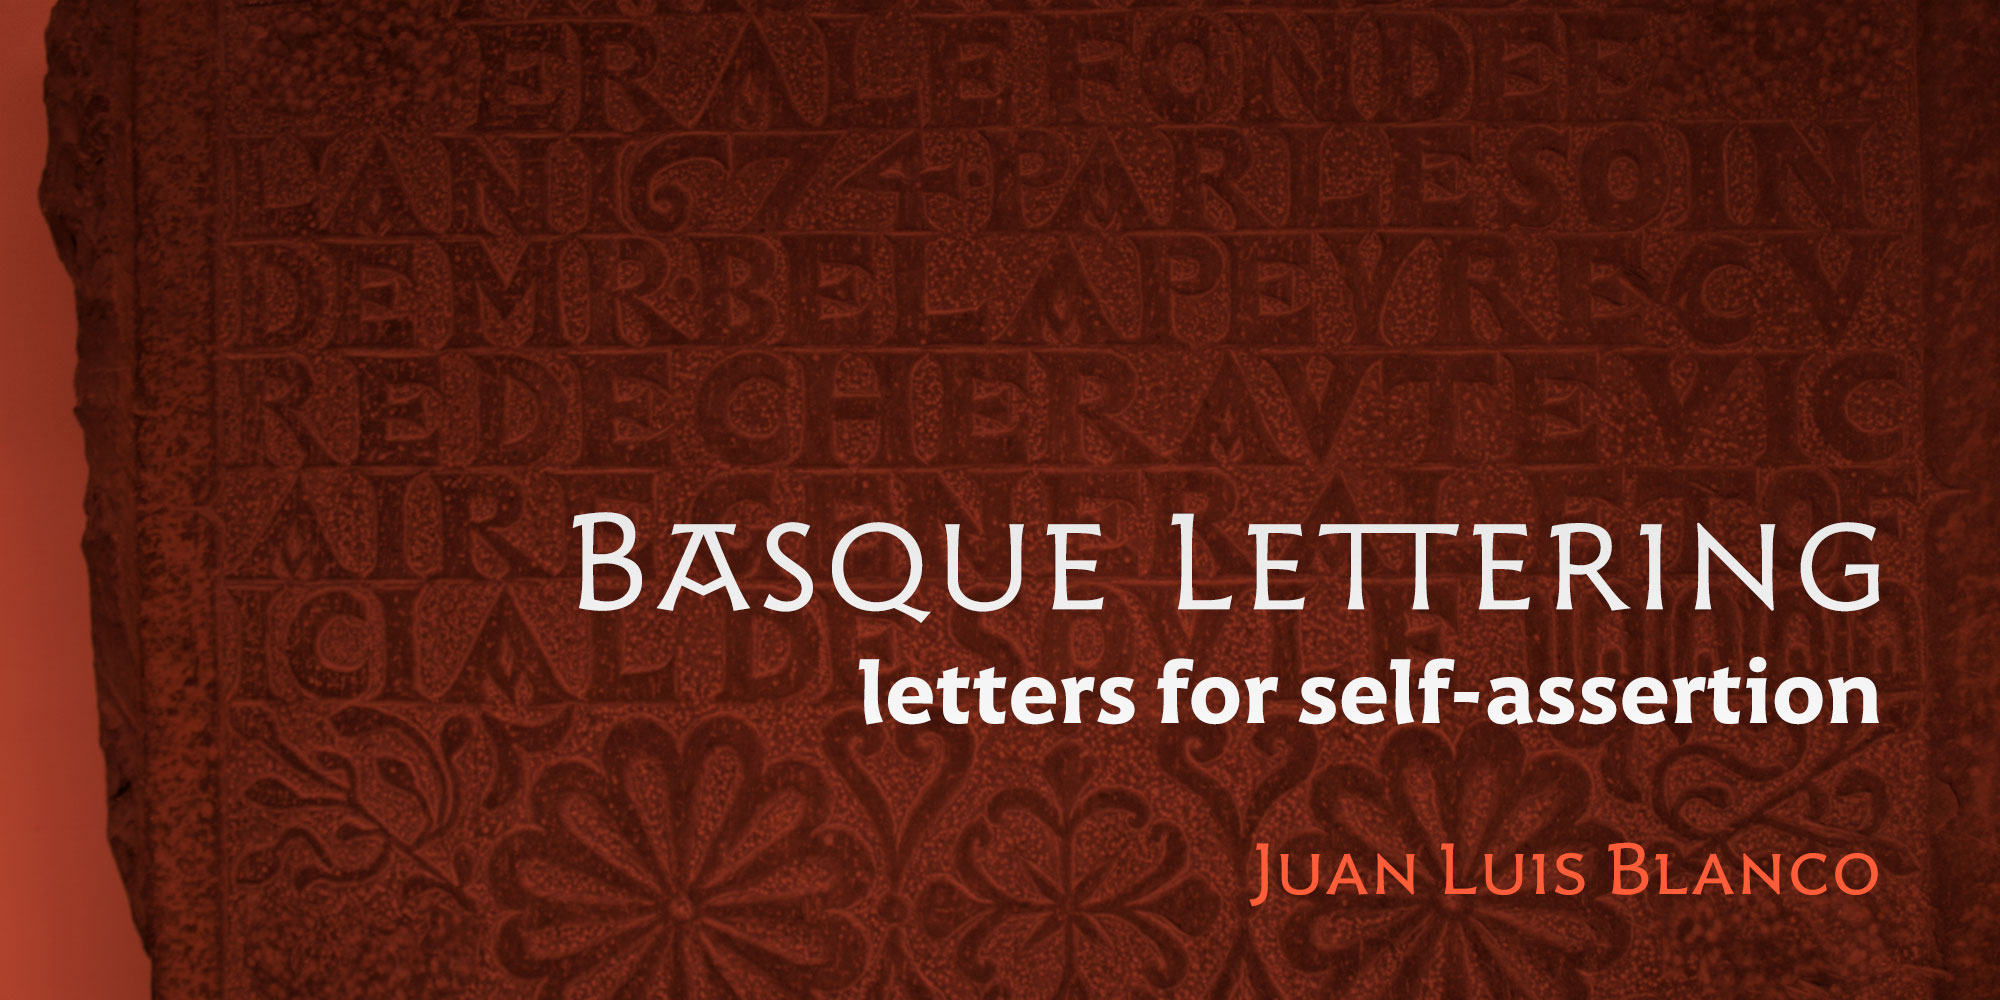 Basque Lettering: Letters for Self-Assertion